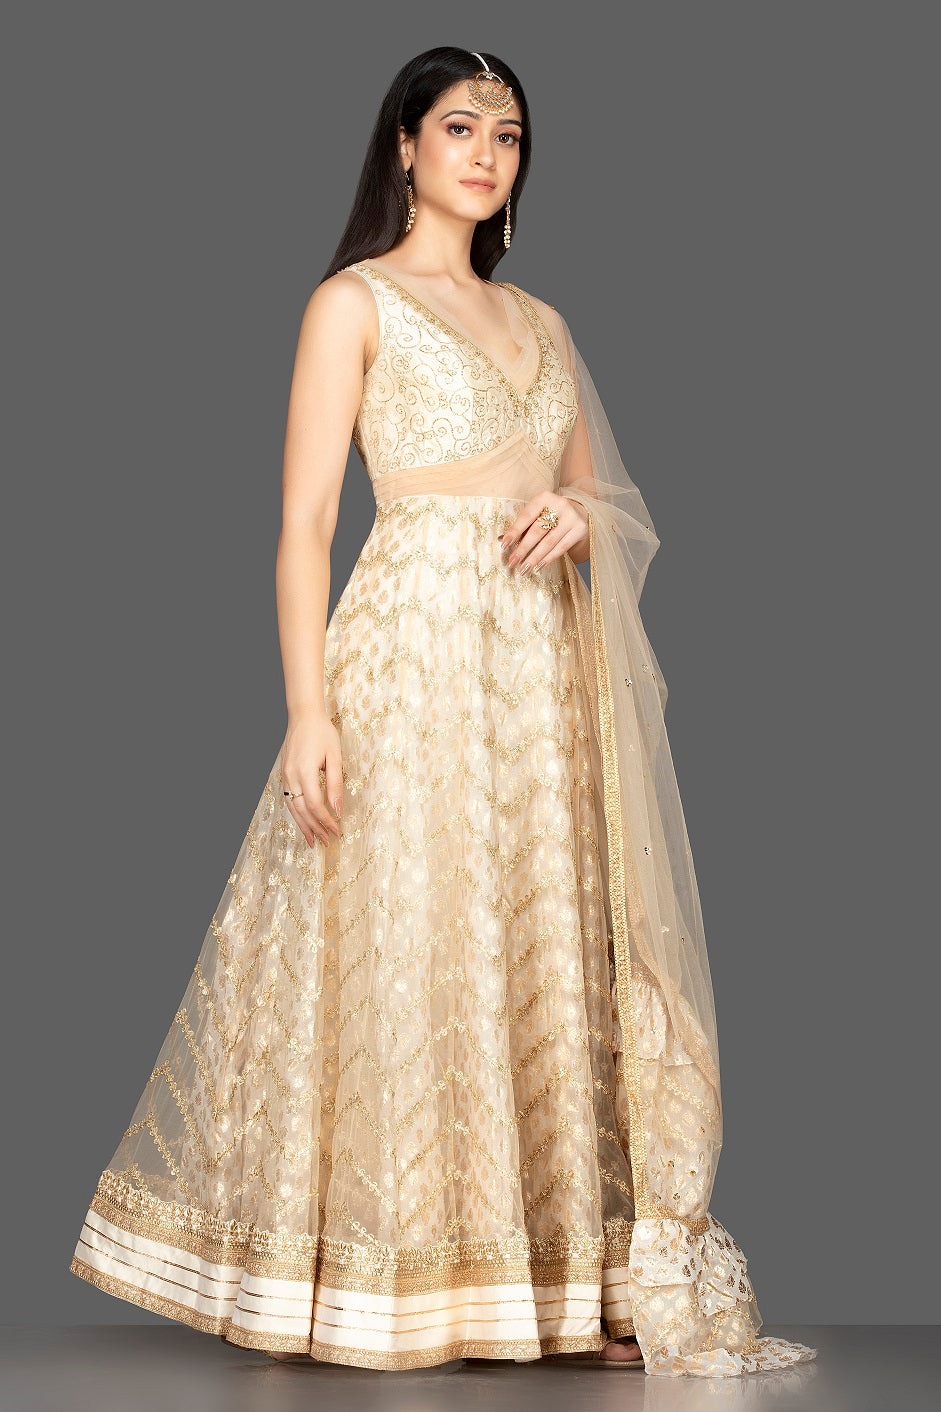 Shop gorgeous cream embroidered net floorlength Anarkali online in USA with dupatta. Spread ethnic elegance on weddings and special occasions in splendid designer lehengas, Anarkali suits crafted with exquisite Indian craftsmanship from Pure Elegance Indian fashion store in USA.-side